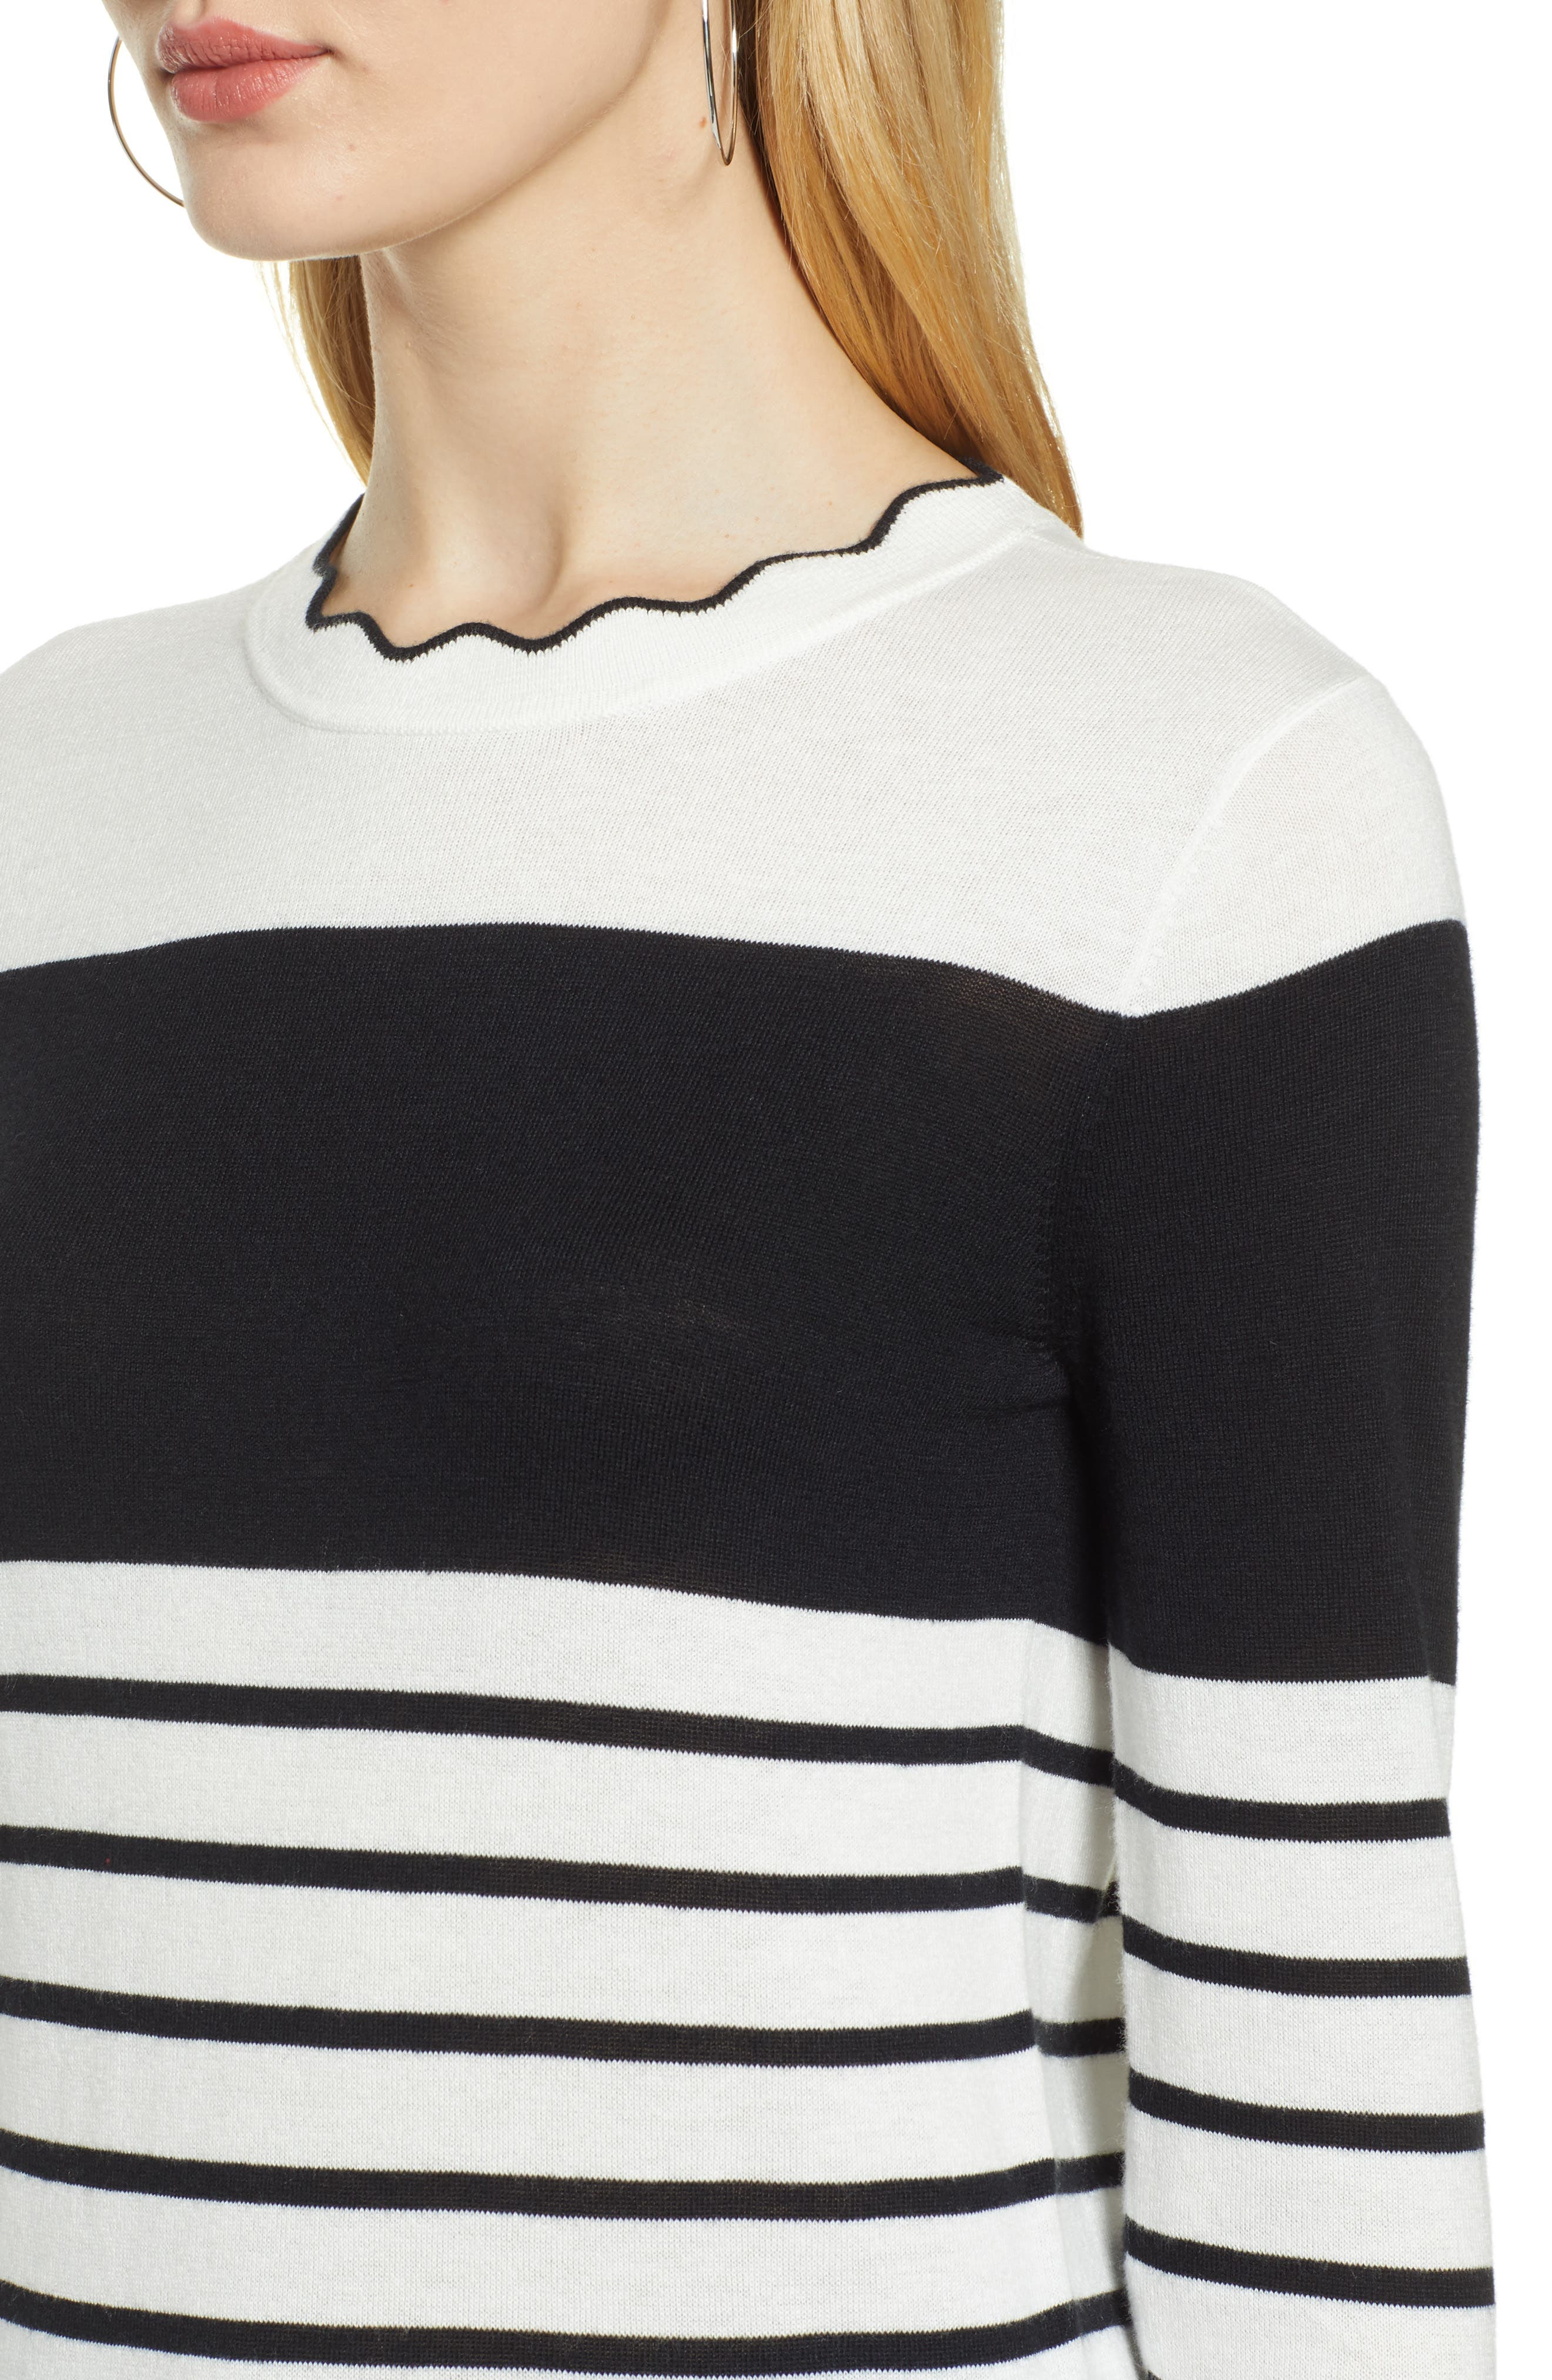 HALOGEN<SUP>®</SUP>, Scallop Neck Sweater, Alternate thumbnail 4, color, 900